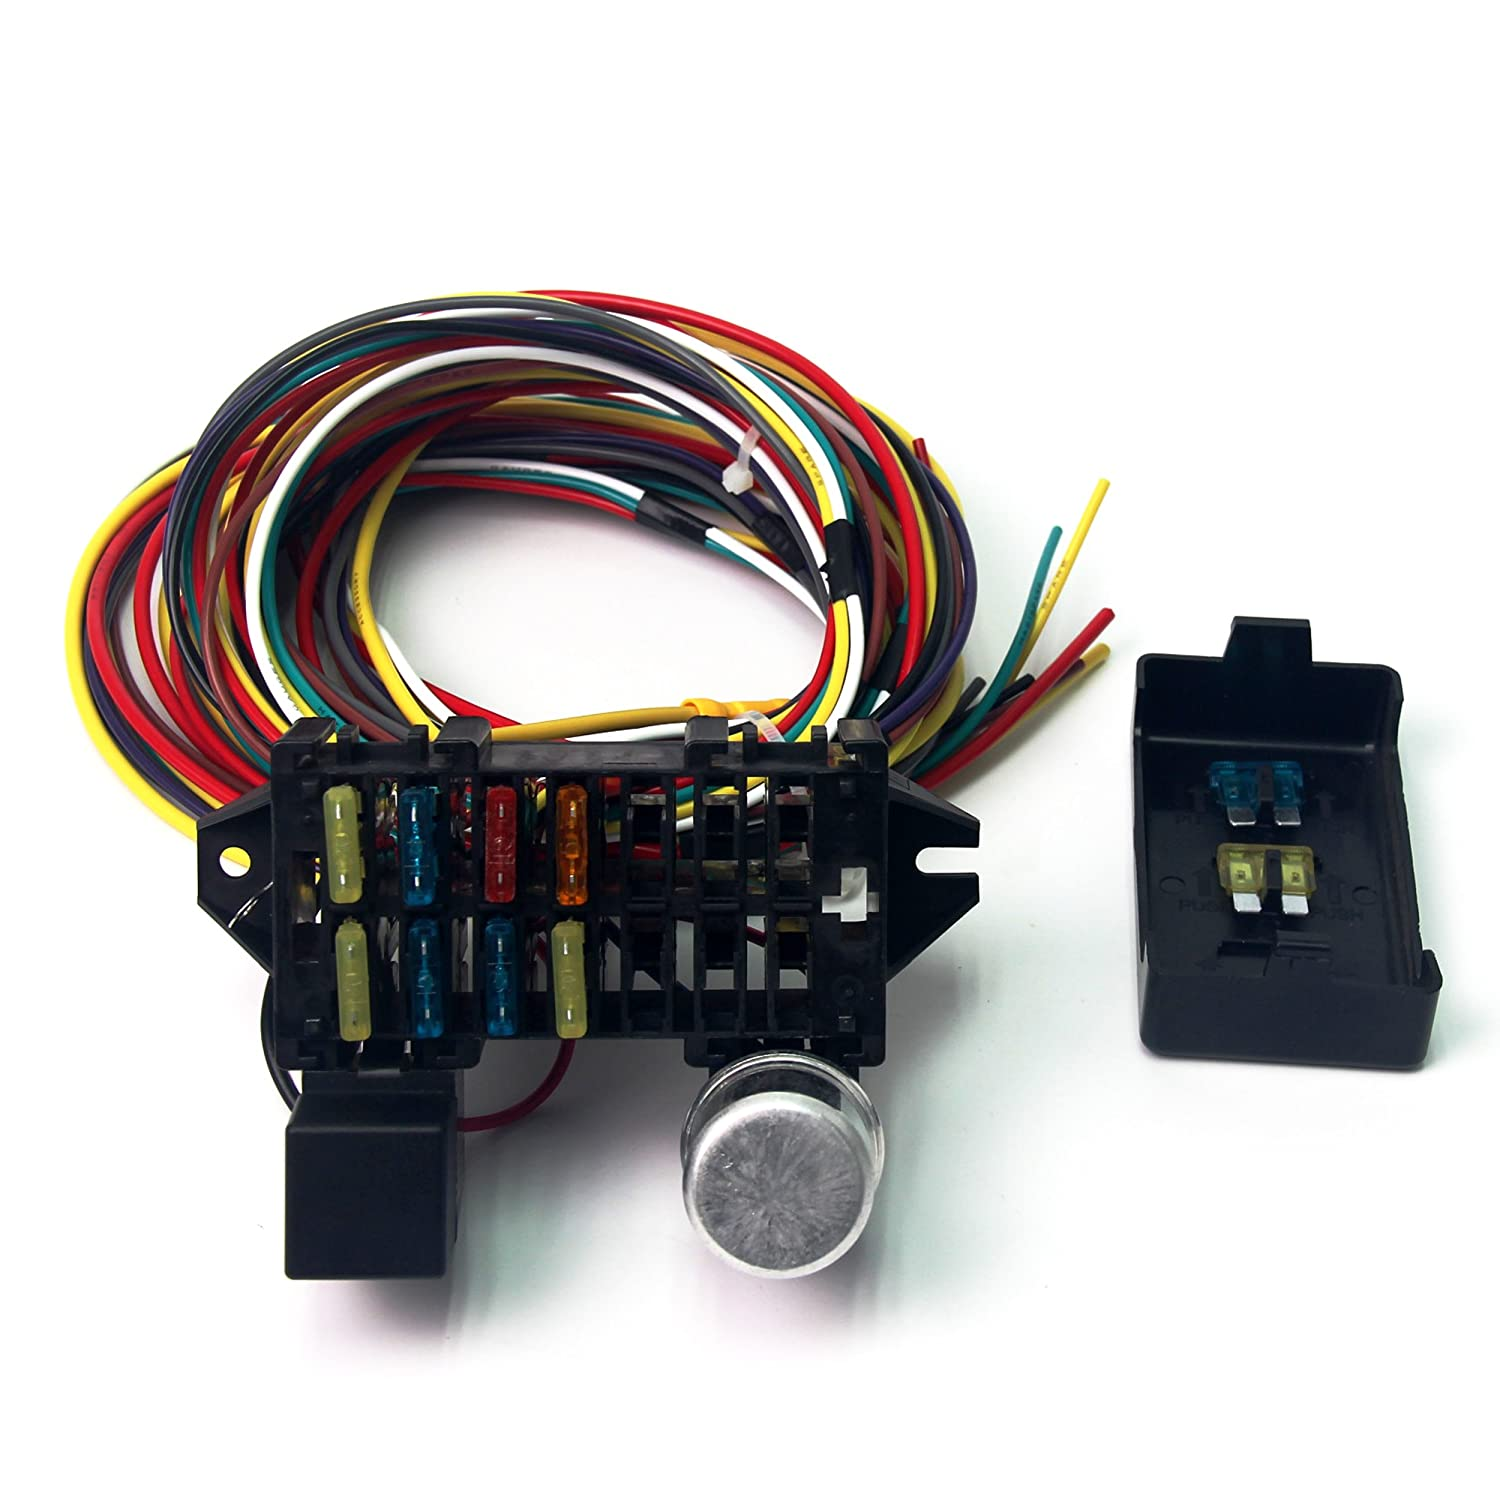 818OhNpuI4L._SL1500_ amazon com wisamic 10 circuit basic wiring harness fuse box street rod wiring harness at nearapp.co